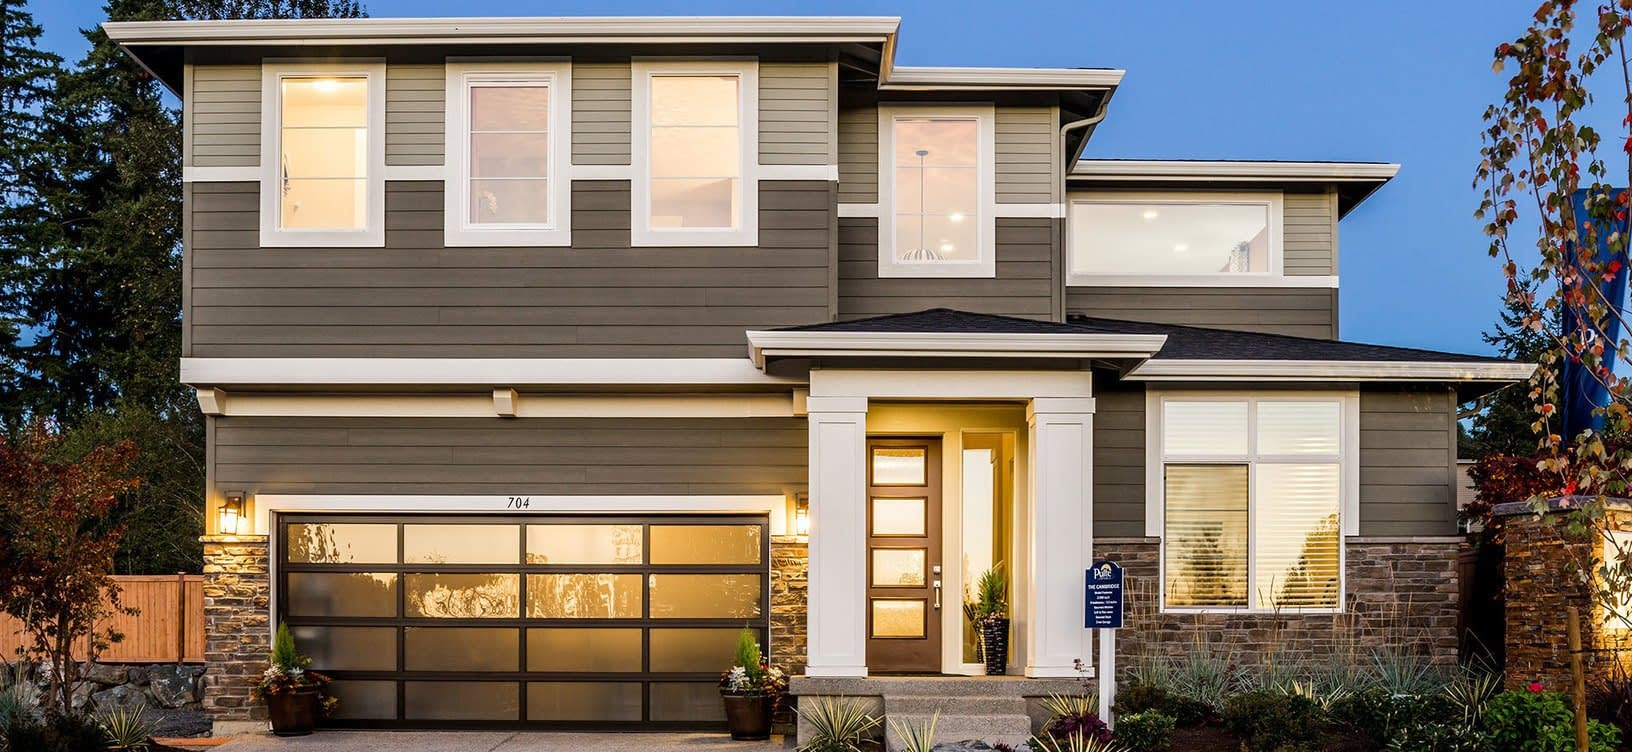 , Homebuilders Take Sustainability to New Heights, The Circular Economy